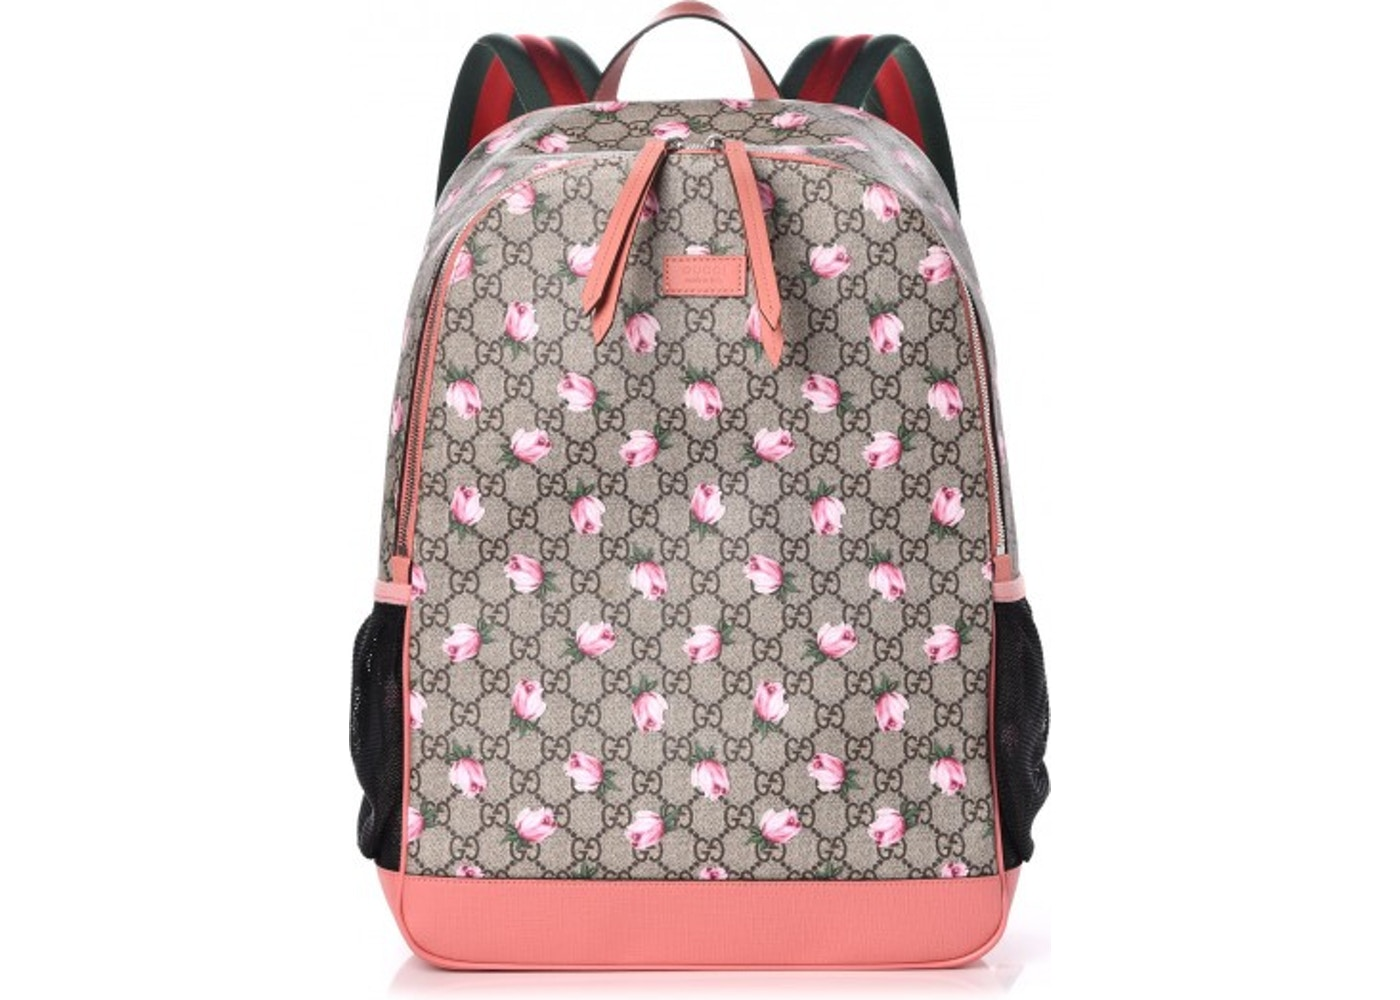 e1f3b8b73122 Gucci Diaper Bag Backpack Monogram GG Supreme Rose Pink. Monogram GG  Supreme Rose Pink